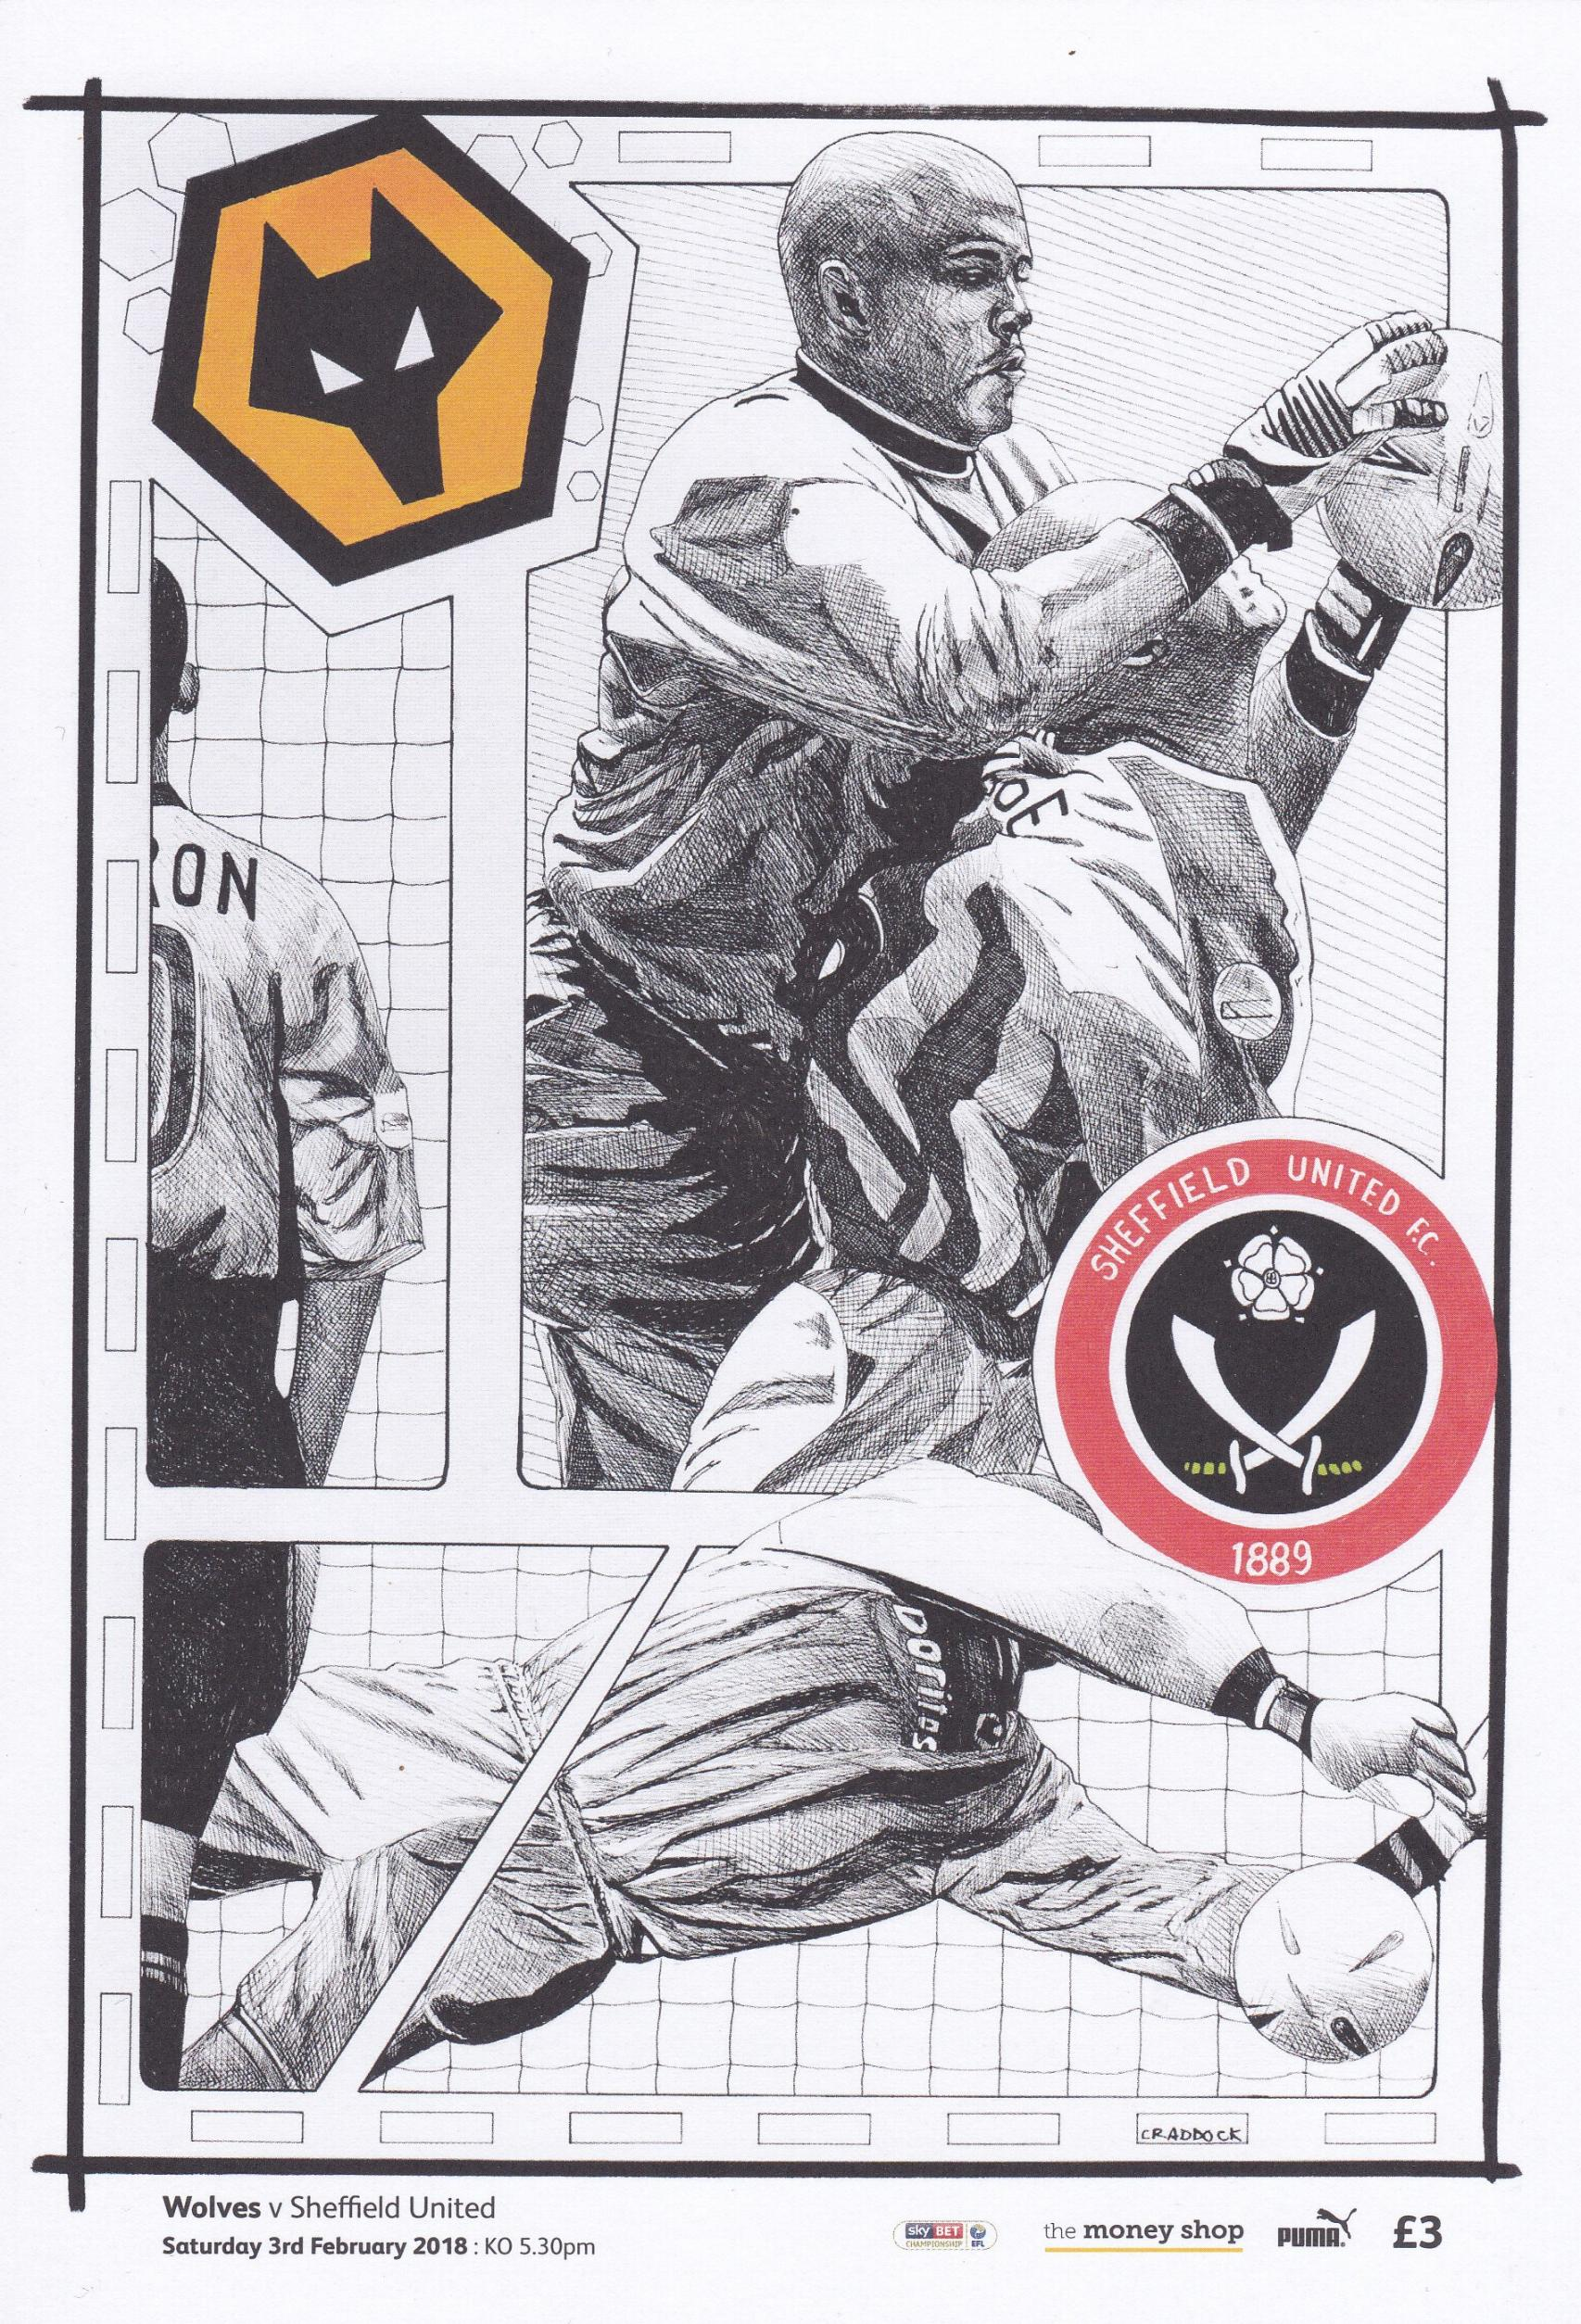 WOLVES v SHEFFIELD UNITED 2017/18